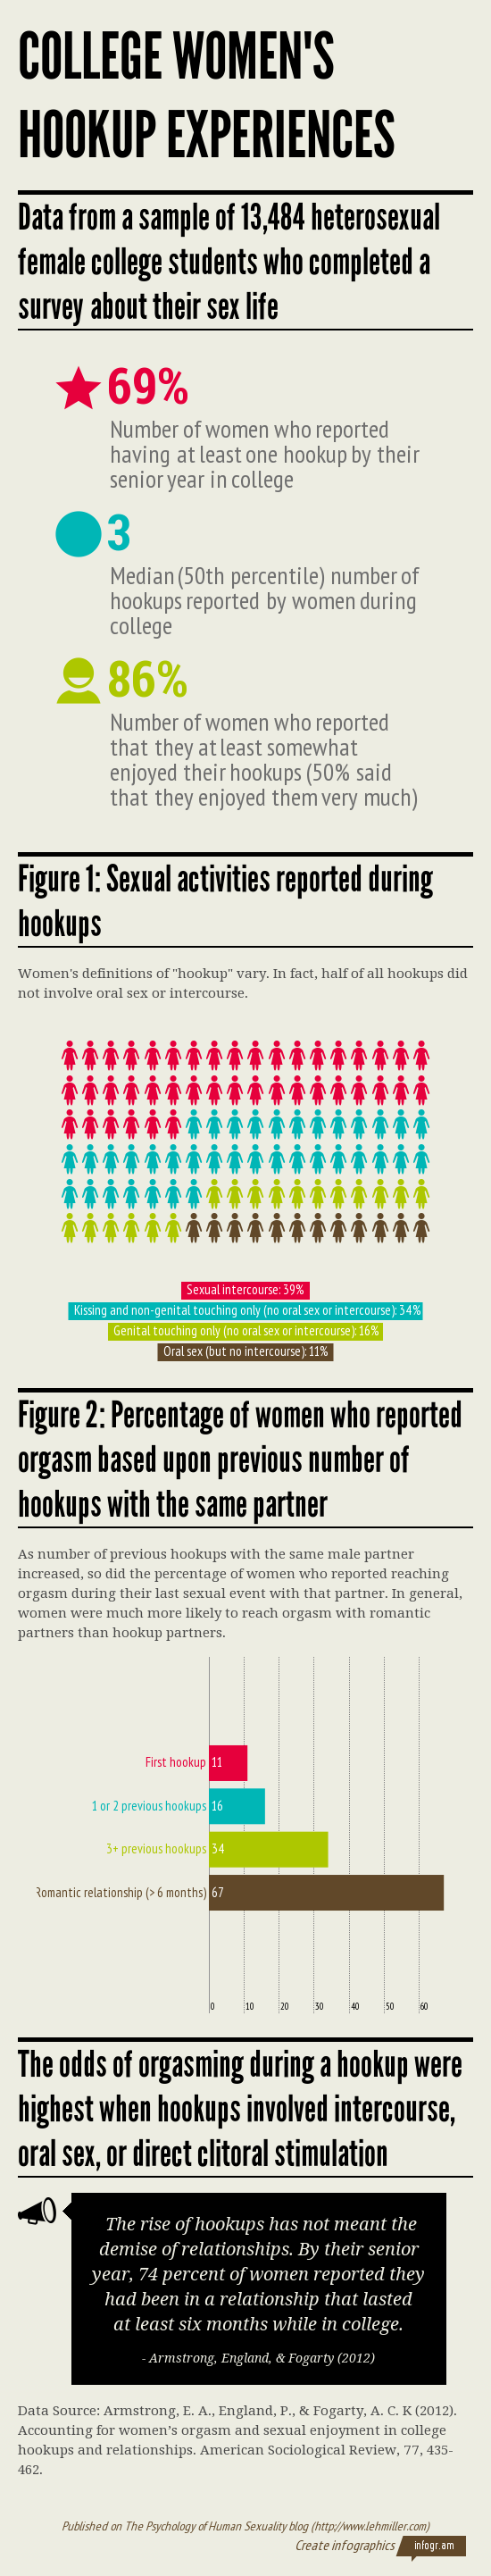 Infographic summarizing data on college women's hookup experiences